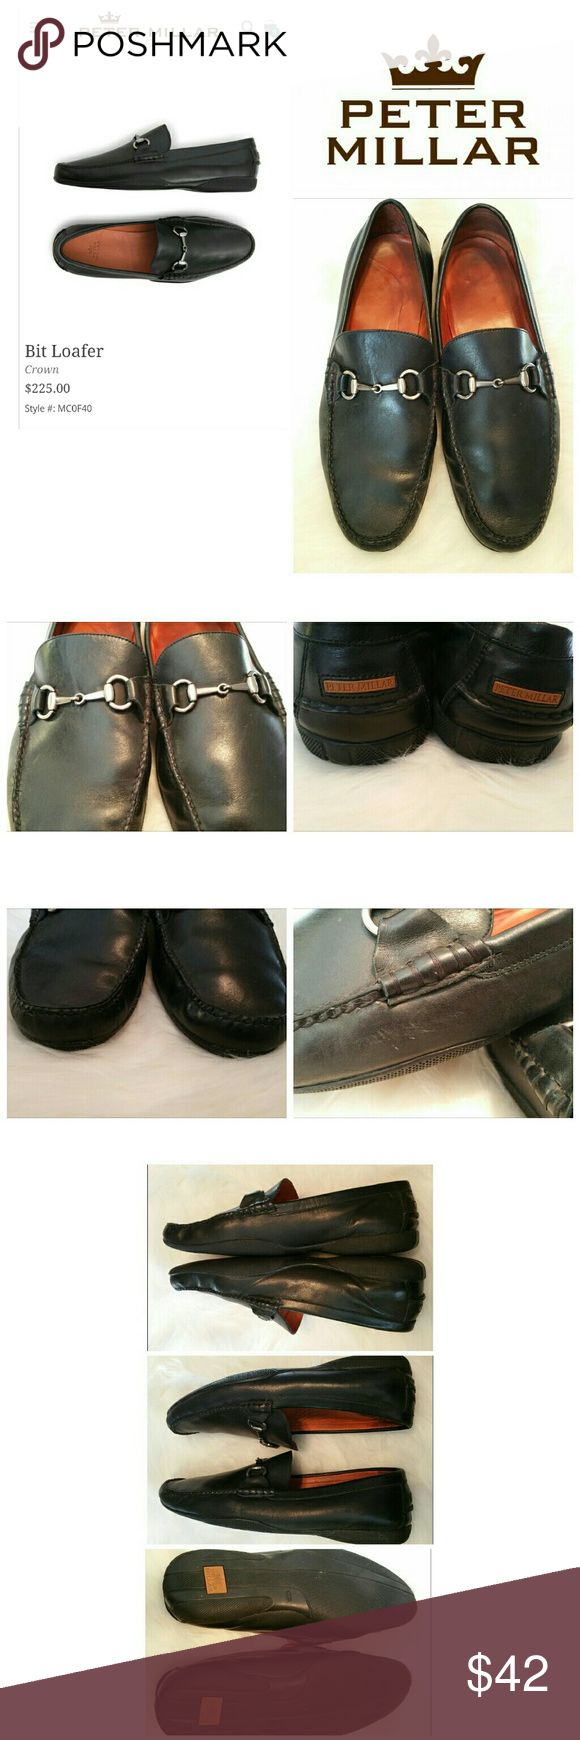 Peter Millar Bit Loafers These loafers are soft and ready to wear!!  Minimal wear to the bottoms and outside leather.  Small scuff, as seen in the pictures, that I'm sure will buff out with a polish. Peter Millar Shoes Loafers & Slip-Ons